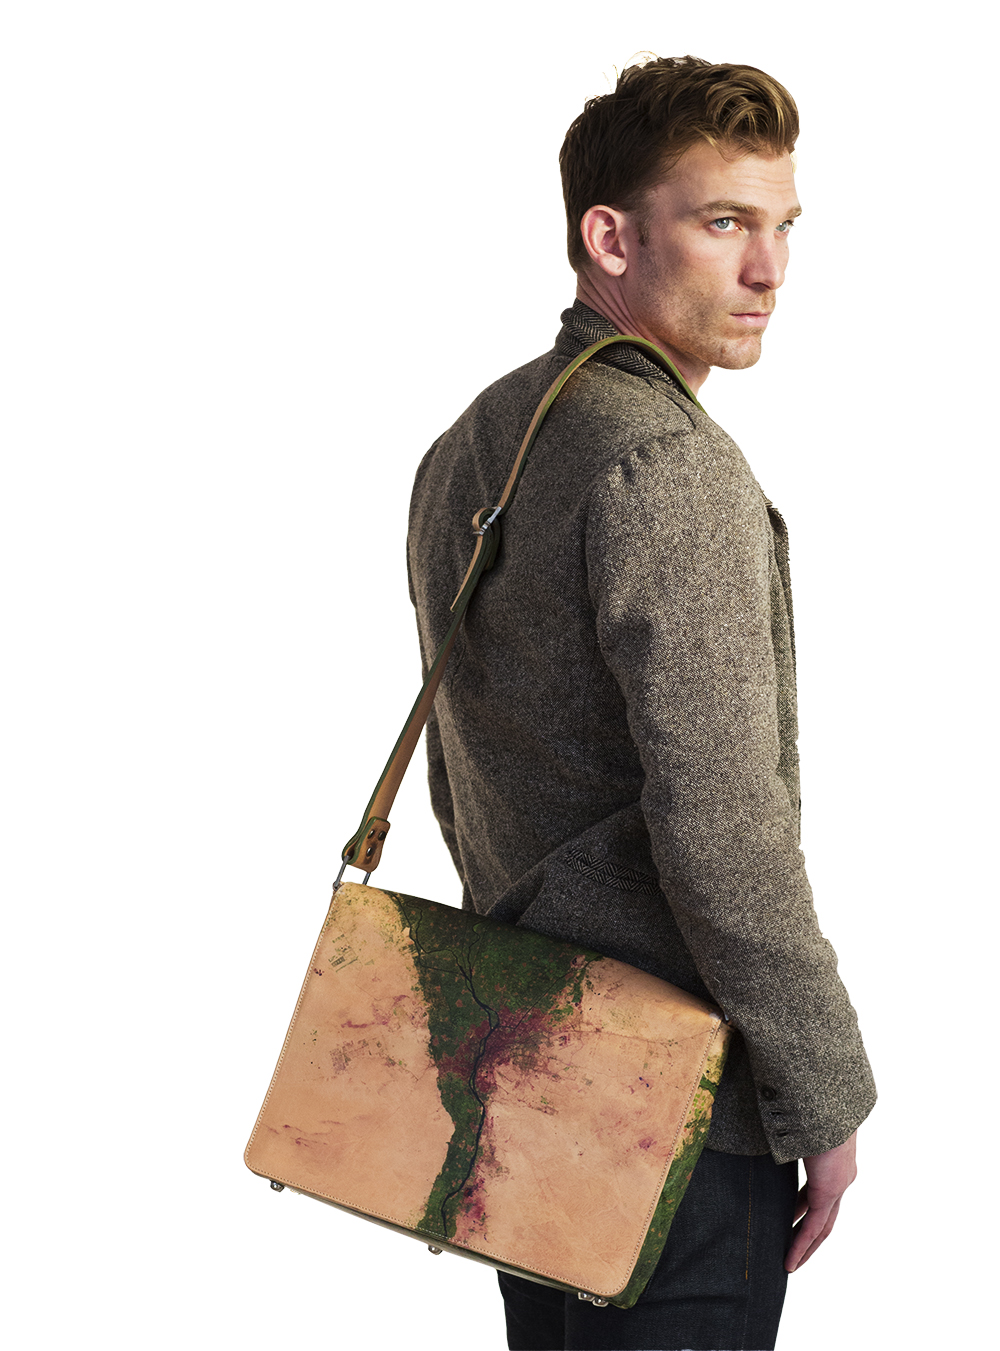 Cairo Messenger Bag